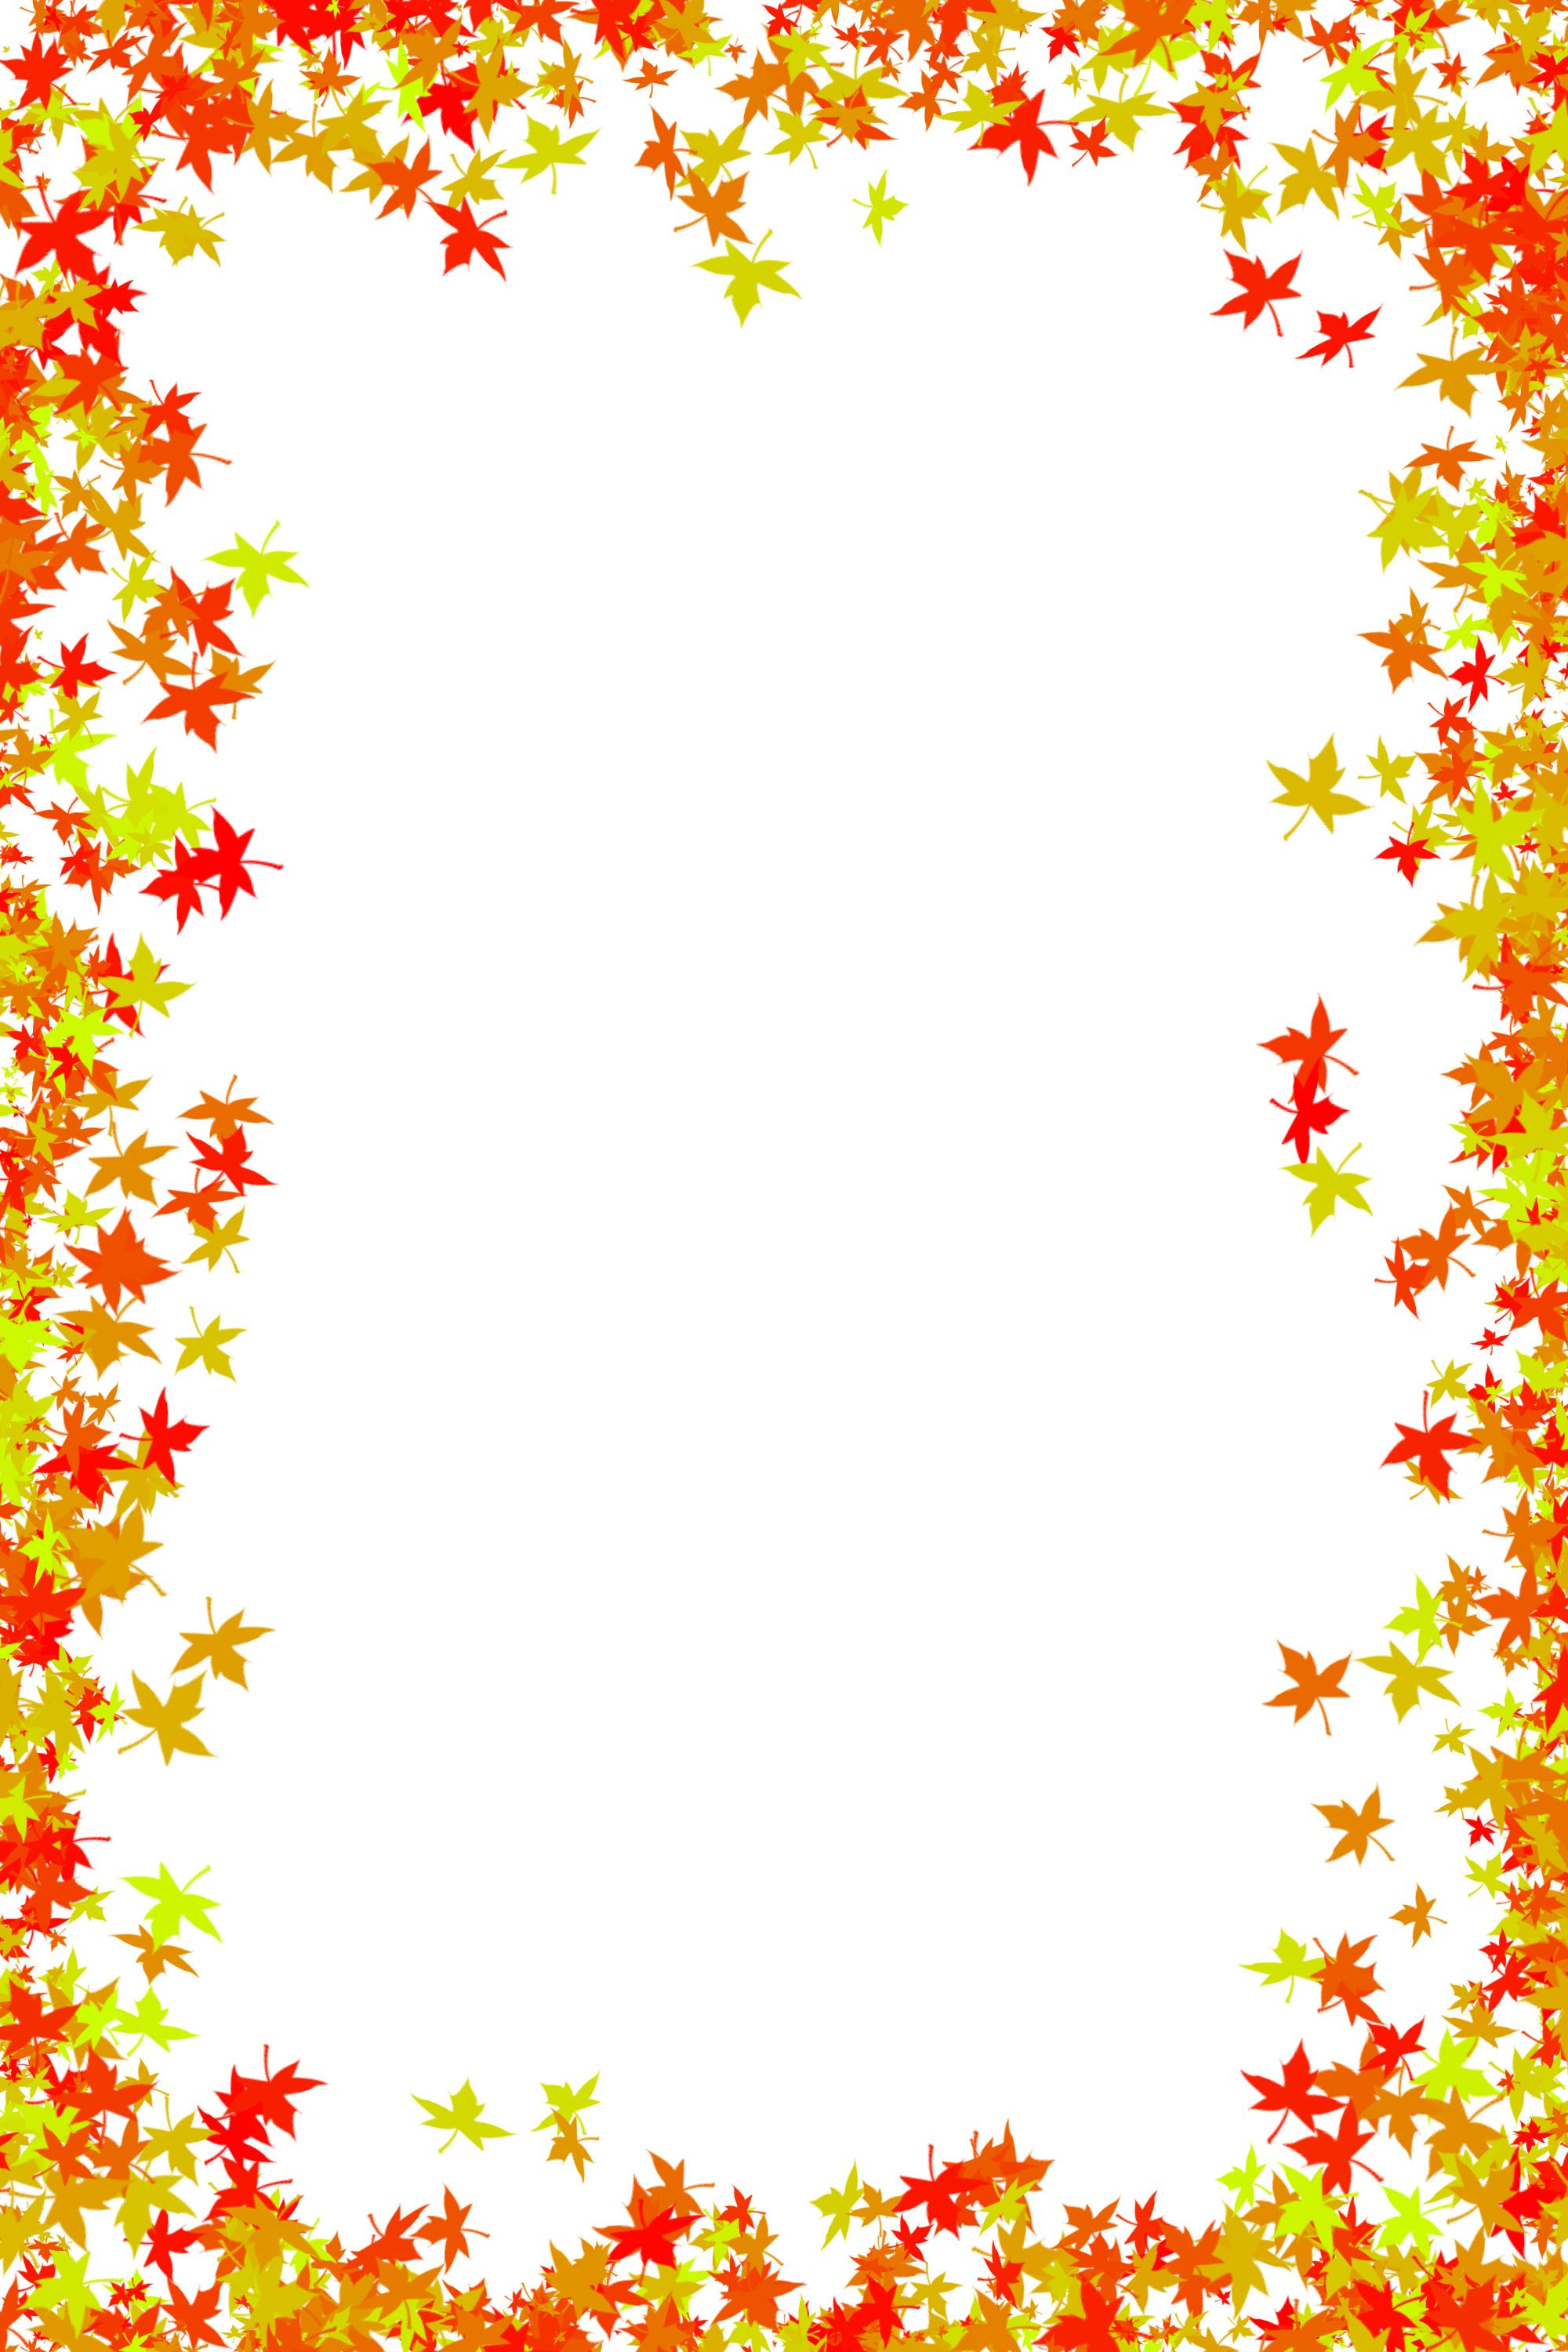 Fall Foliage Border Free download photo frame of maple leaves in